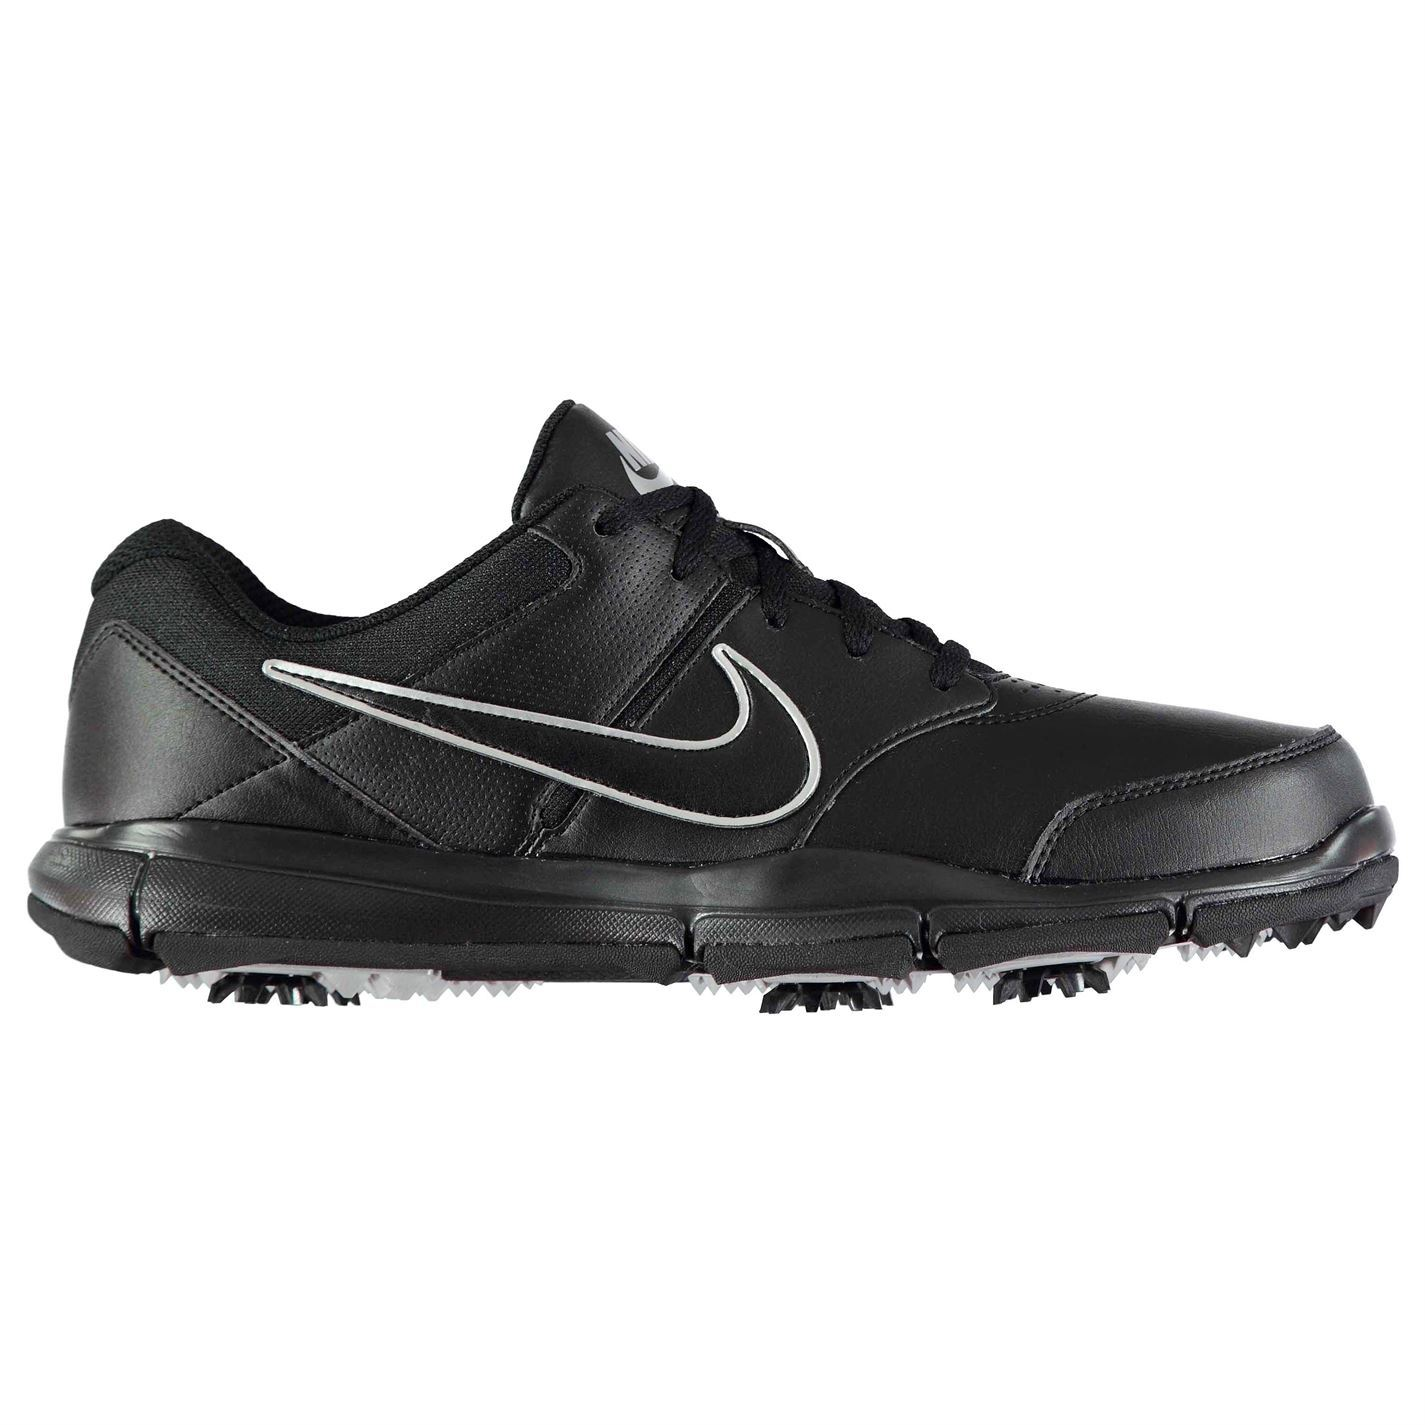 Nike-Durasport-4-Spiked-Golf-Shoes-Mens-Spikes-Footwear thumbnail 11